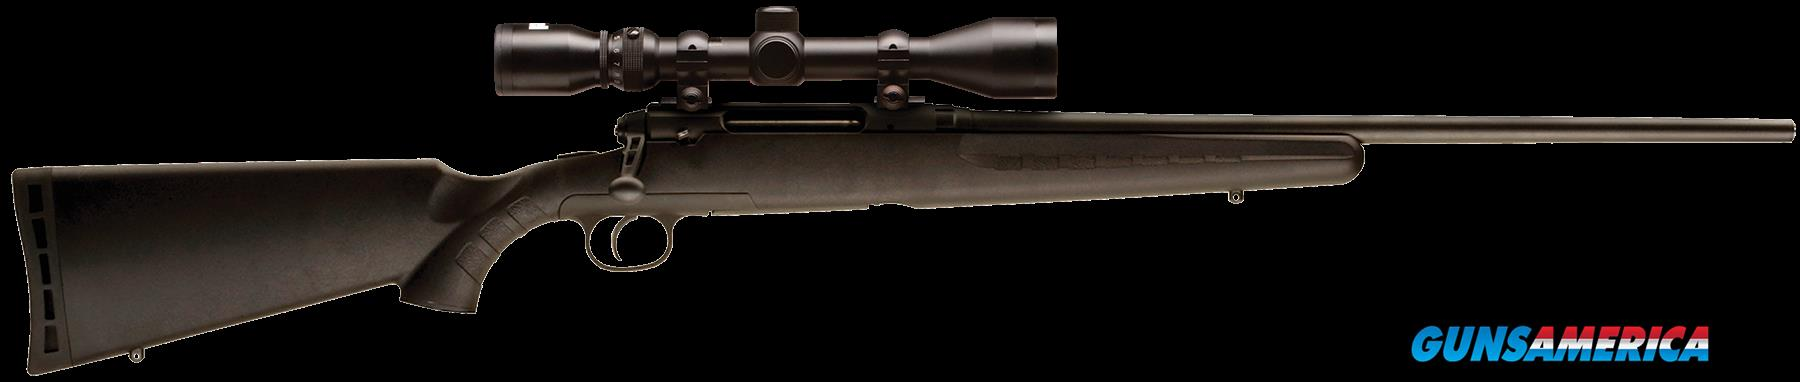 "Savage 19174 Axis XP with Scope Bolt 223 Rem 22"" 4+1 Synthetic Black Stk Stainless Steel  Guns > Rifles > S Misc Rifles"